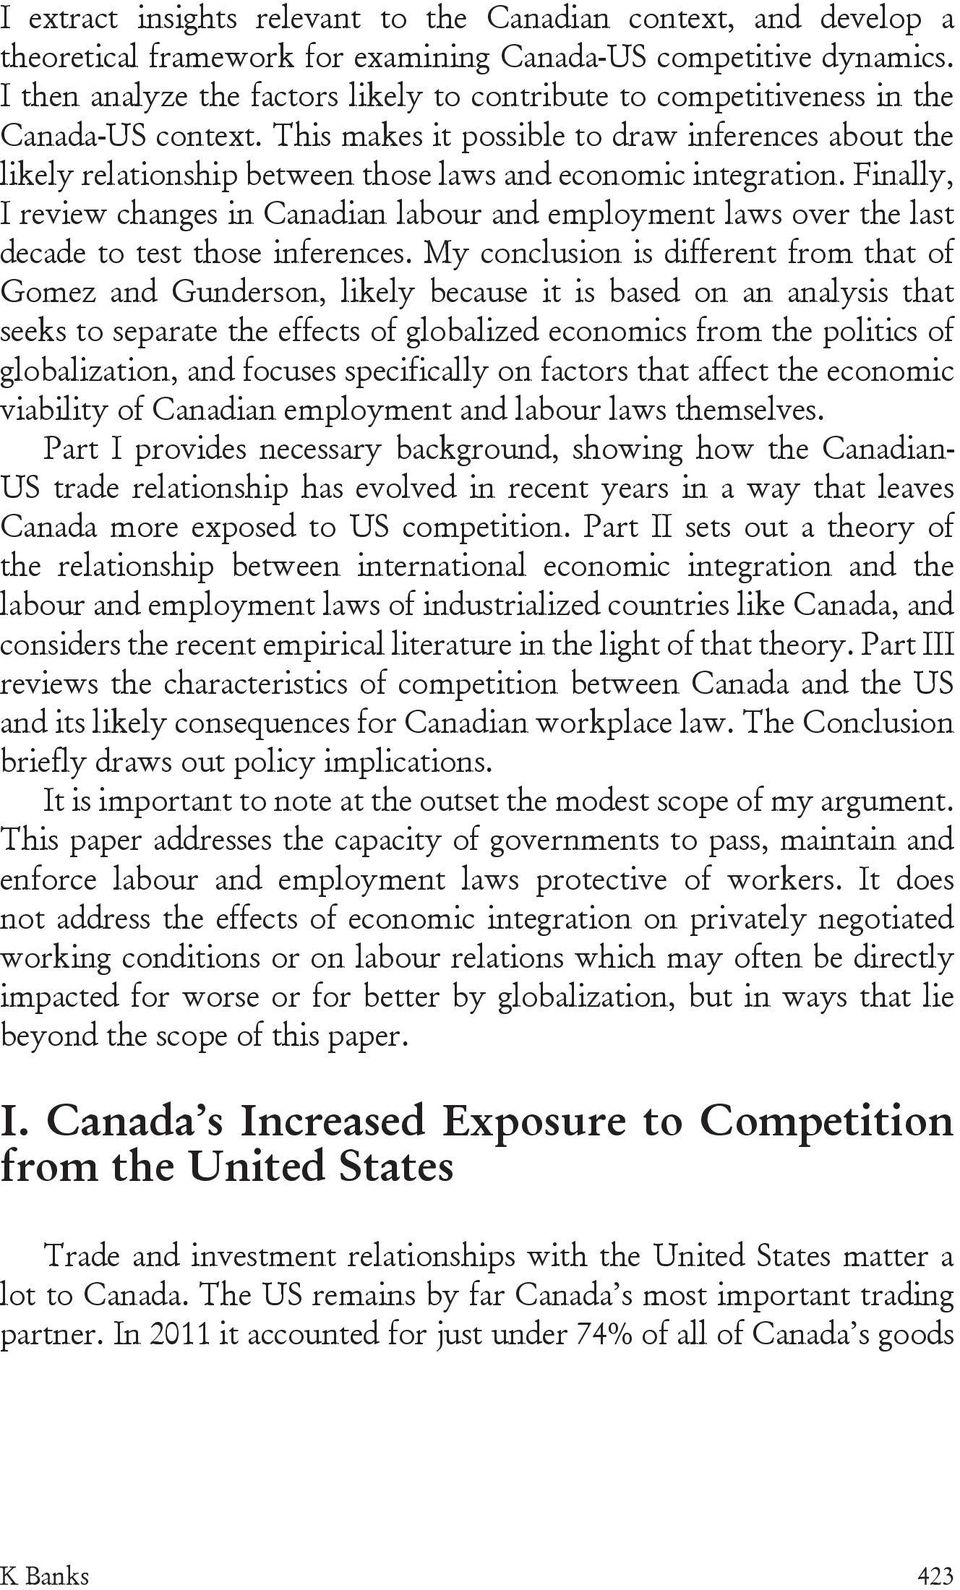 This makes it possible to draw inferences about the likely relationship between those laws and economic integration.